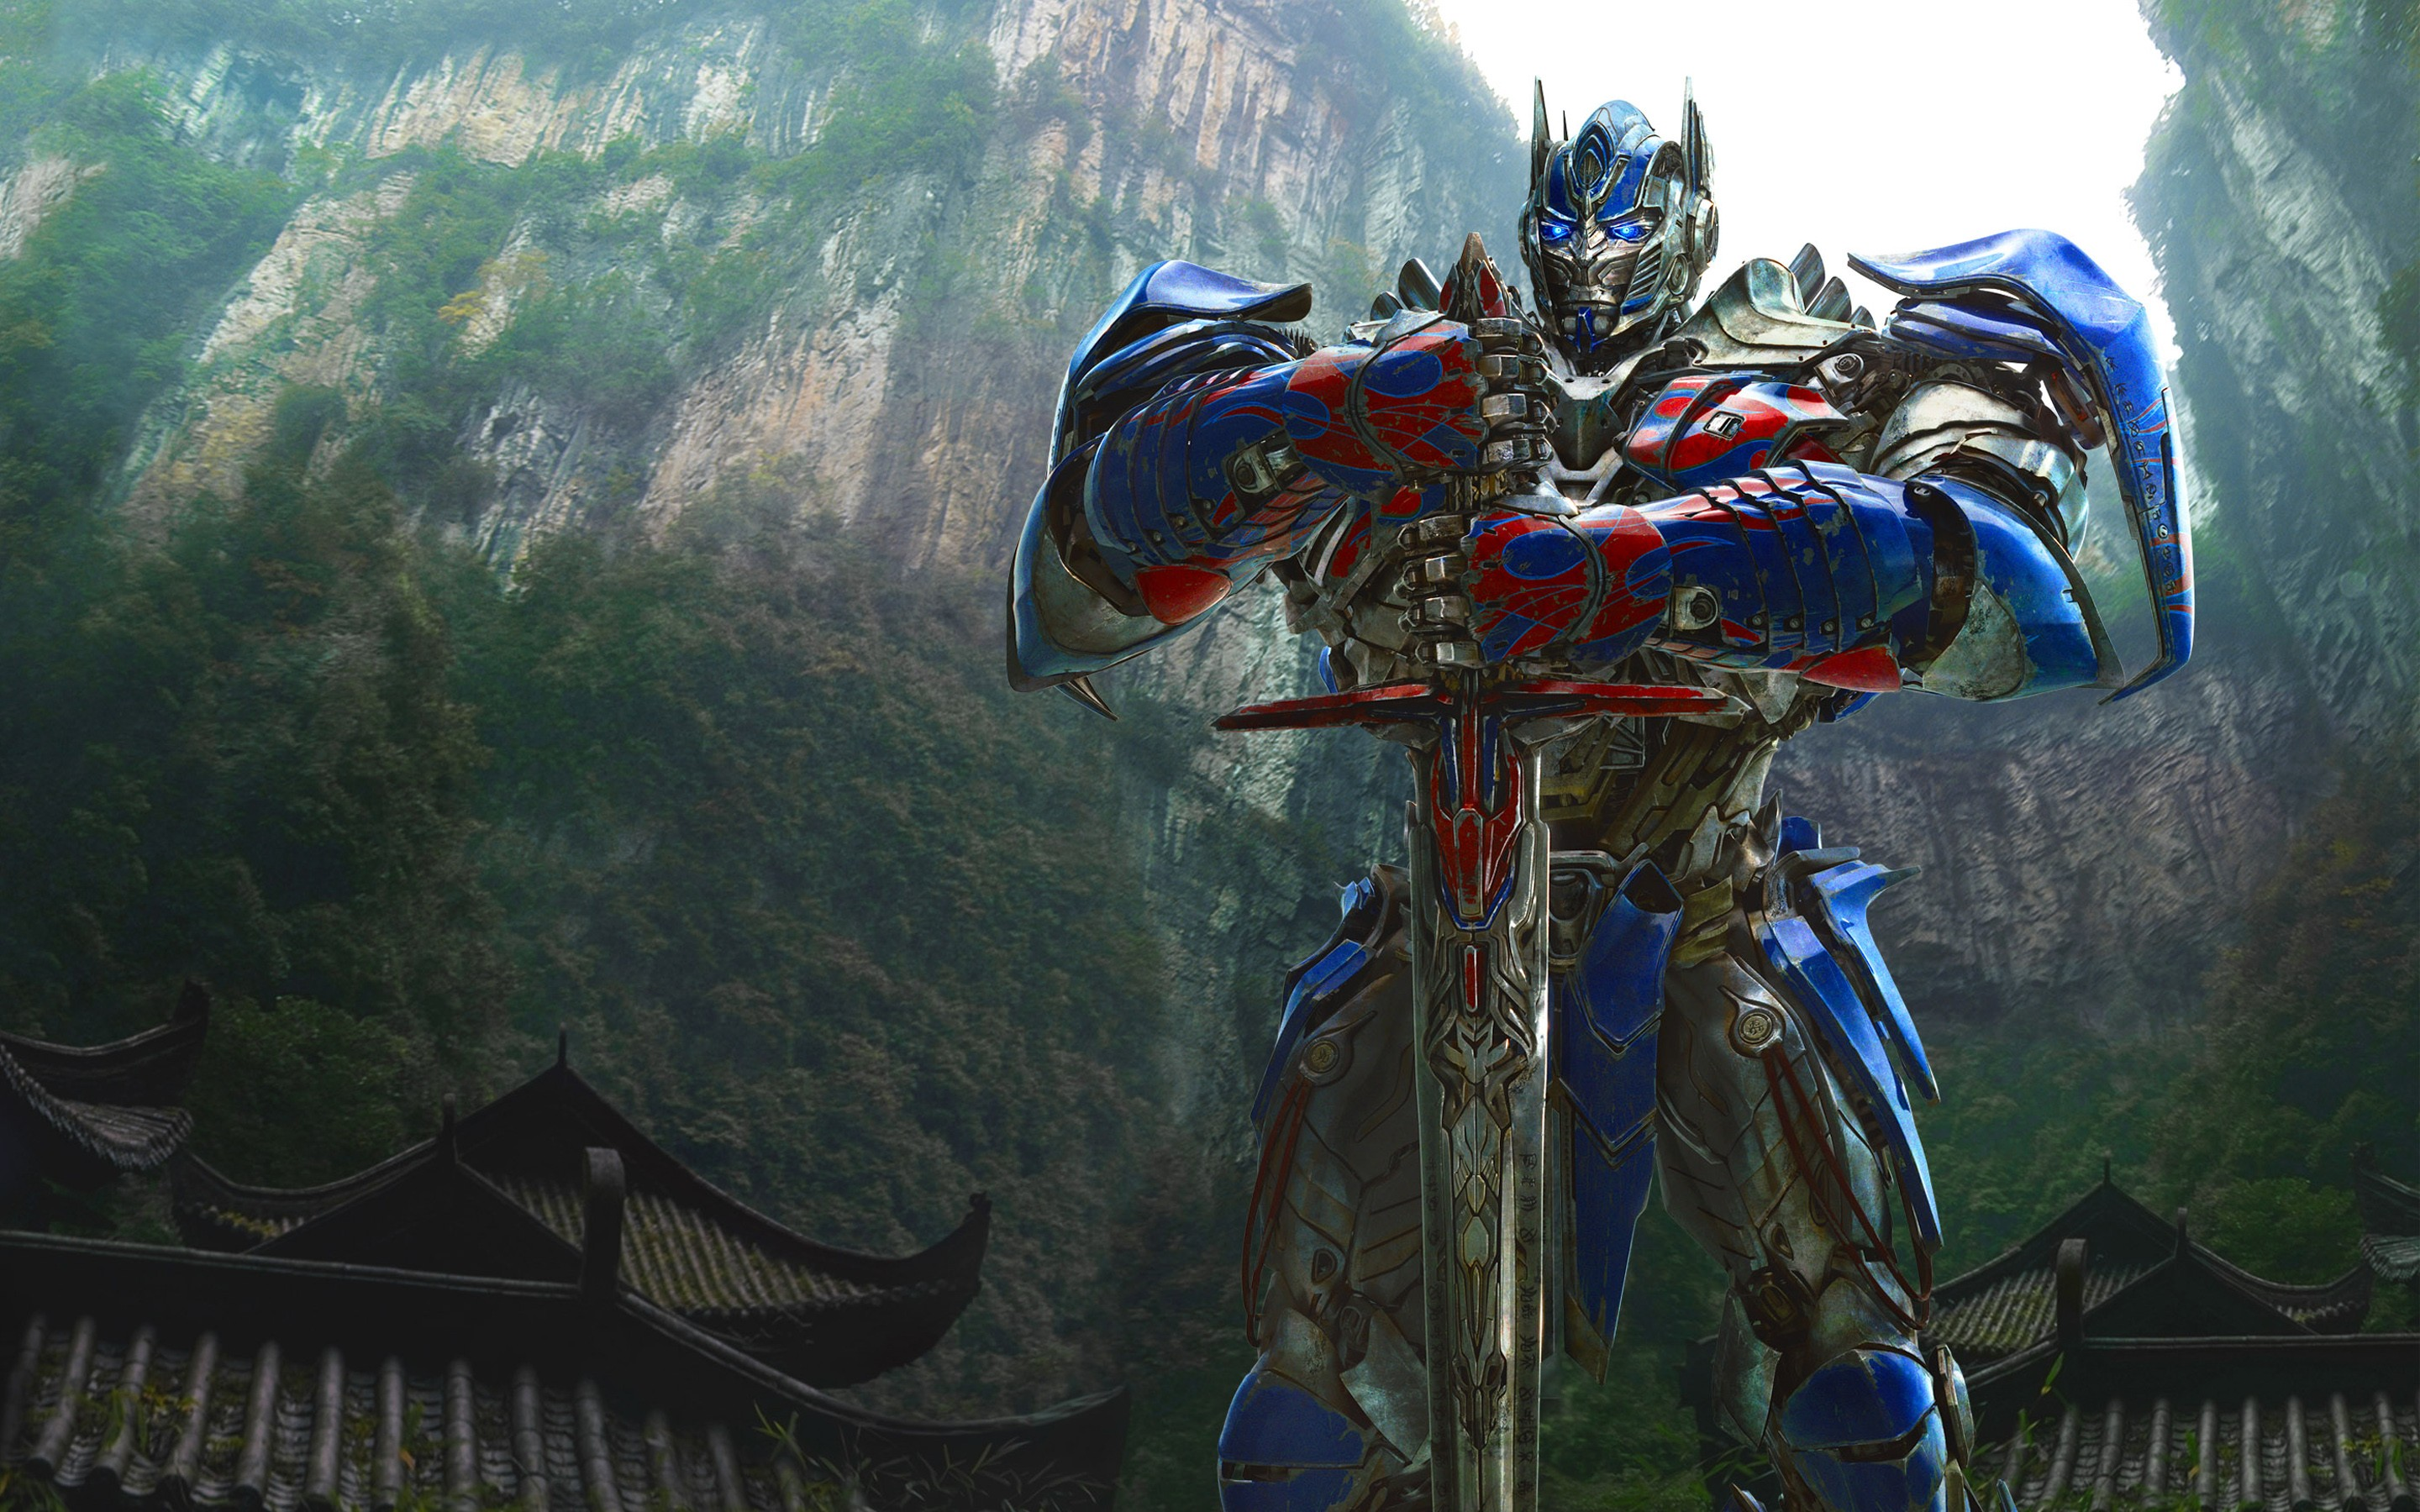 optimus prime wallpaper download - photo #28